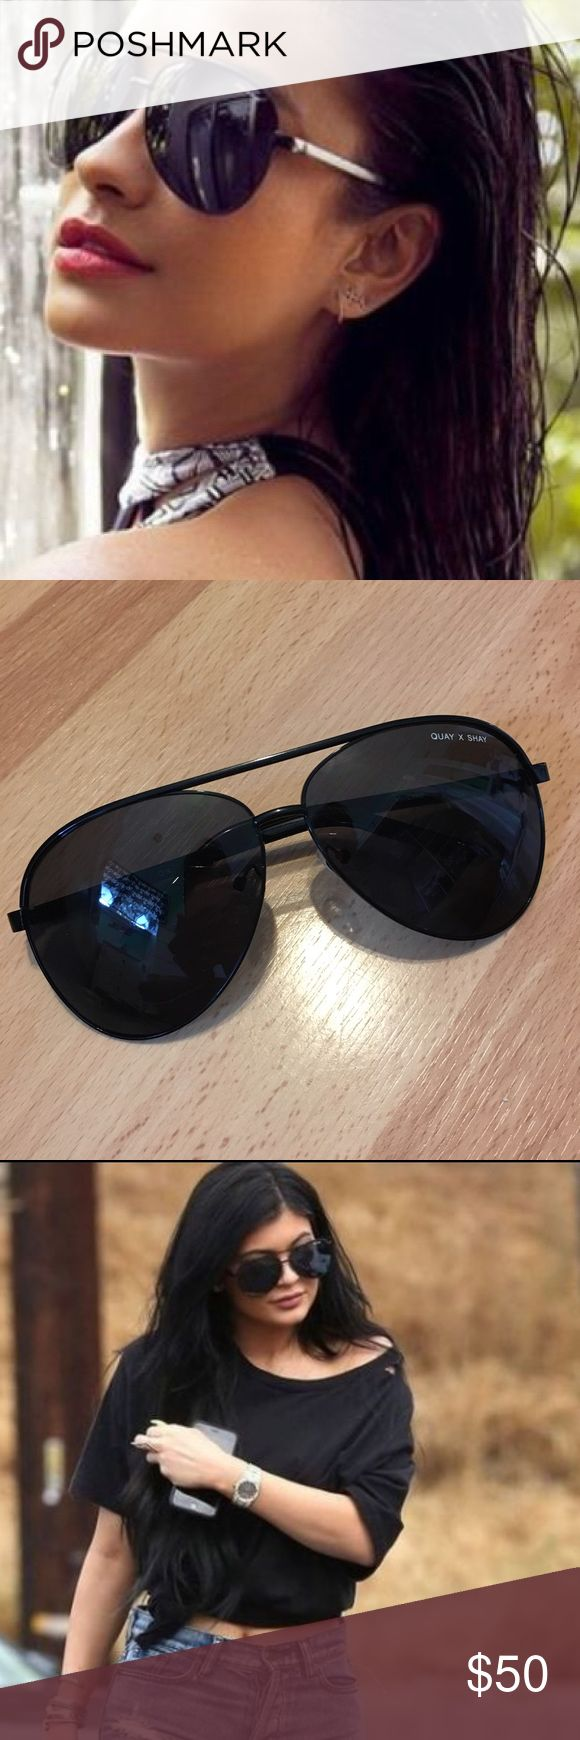 Quay x Shay Vivienne Sunnies Black (Aviator) Quay x Shay Limited Edition Vivienne Sunnies in Black.  These oversized aviators are very popular among celebs such as Kylie Jenner, Jennifer Lopez, and Vanessa Hudgens.  Excellent condition with no scratches! Quay Australia Accessories Sunglasses